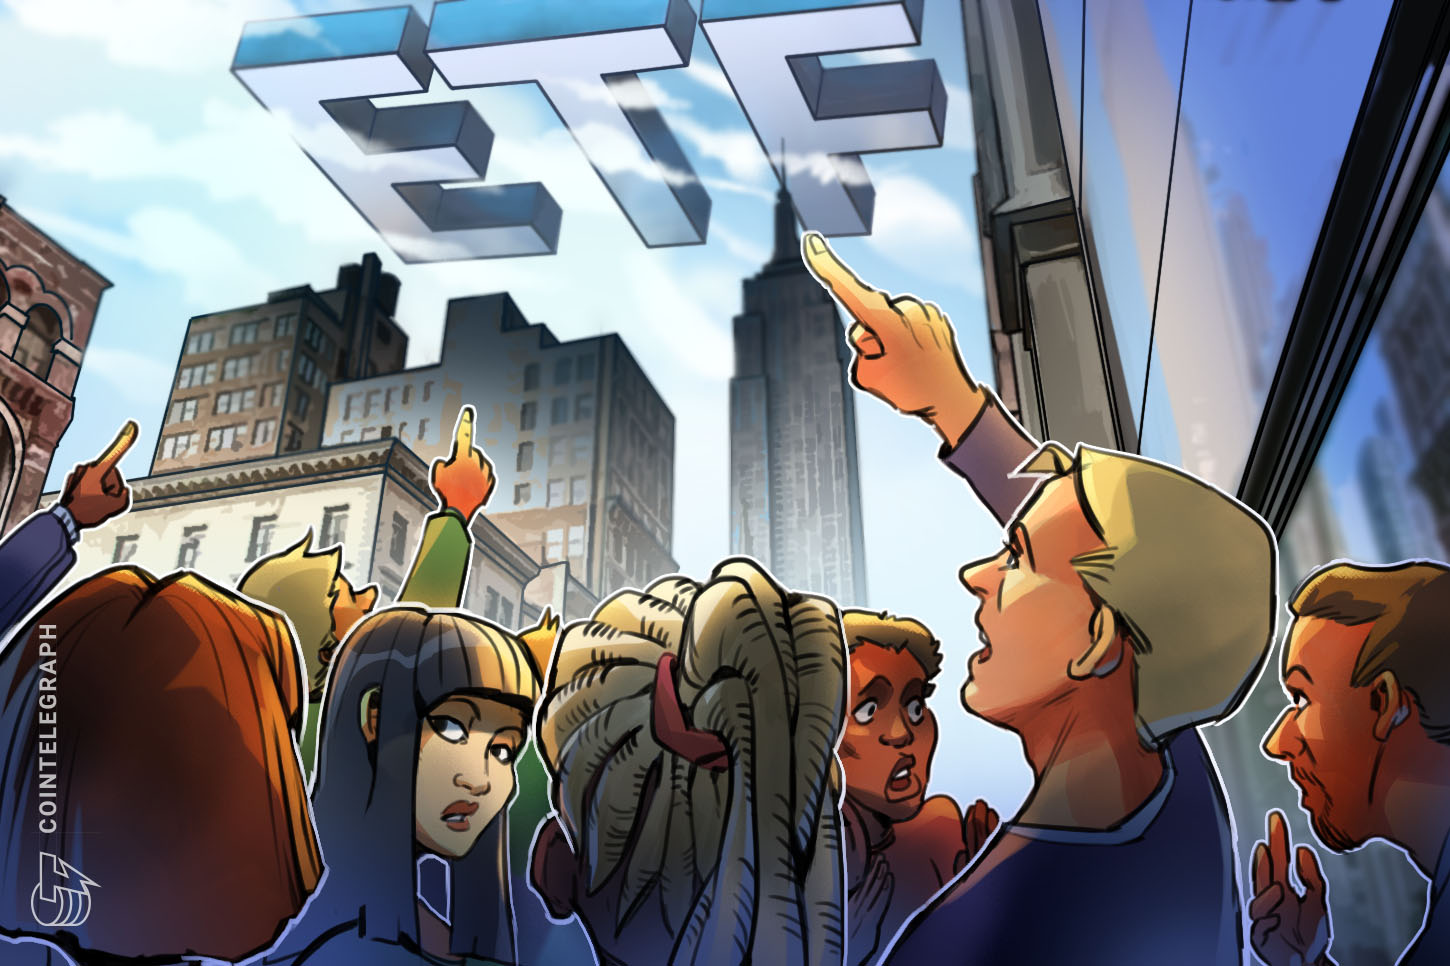 BNY Mellon to provide ETF services for Grayscale's Bitcoin Trust